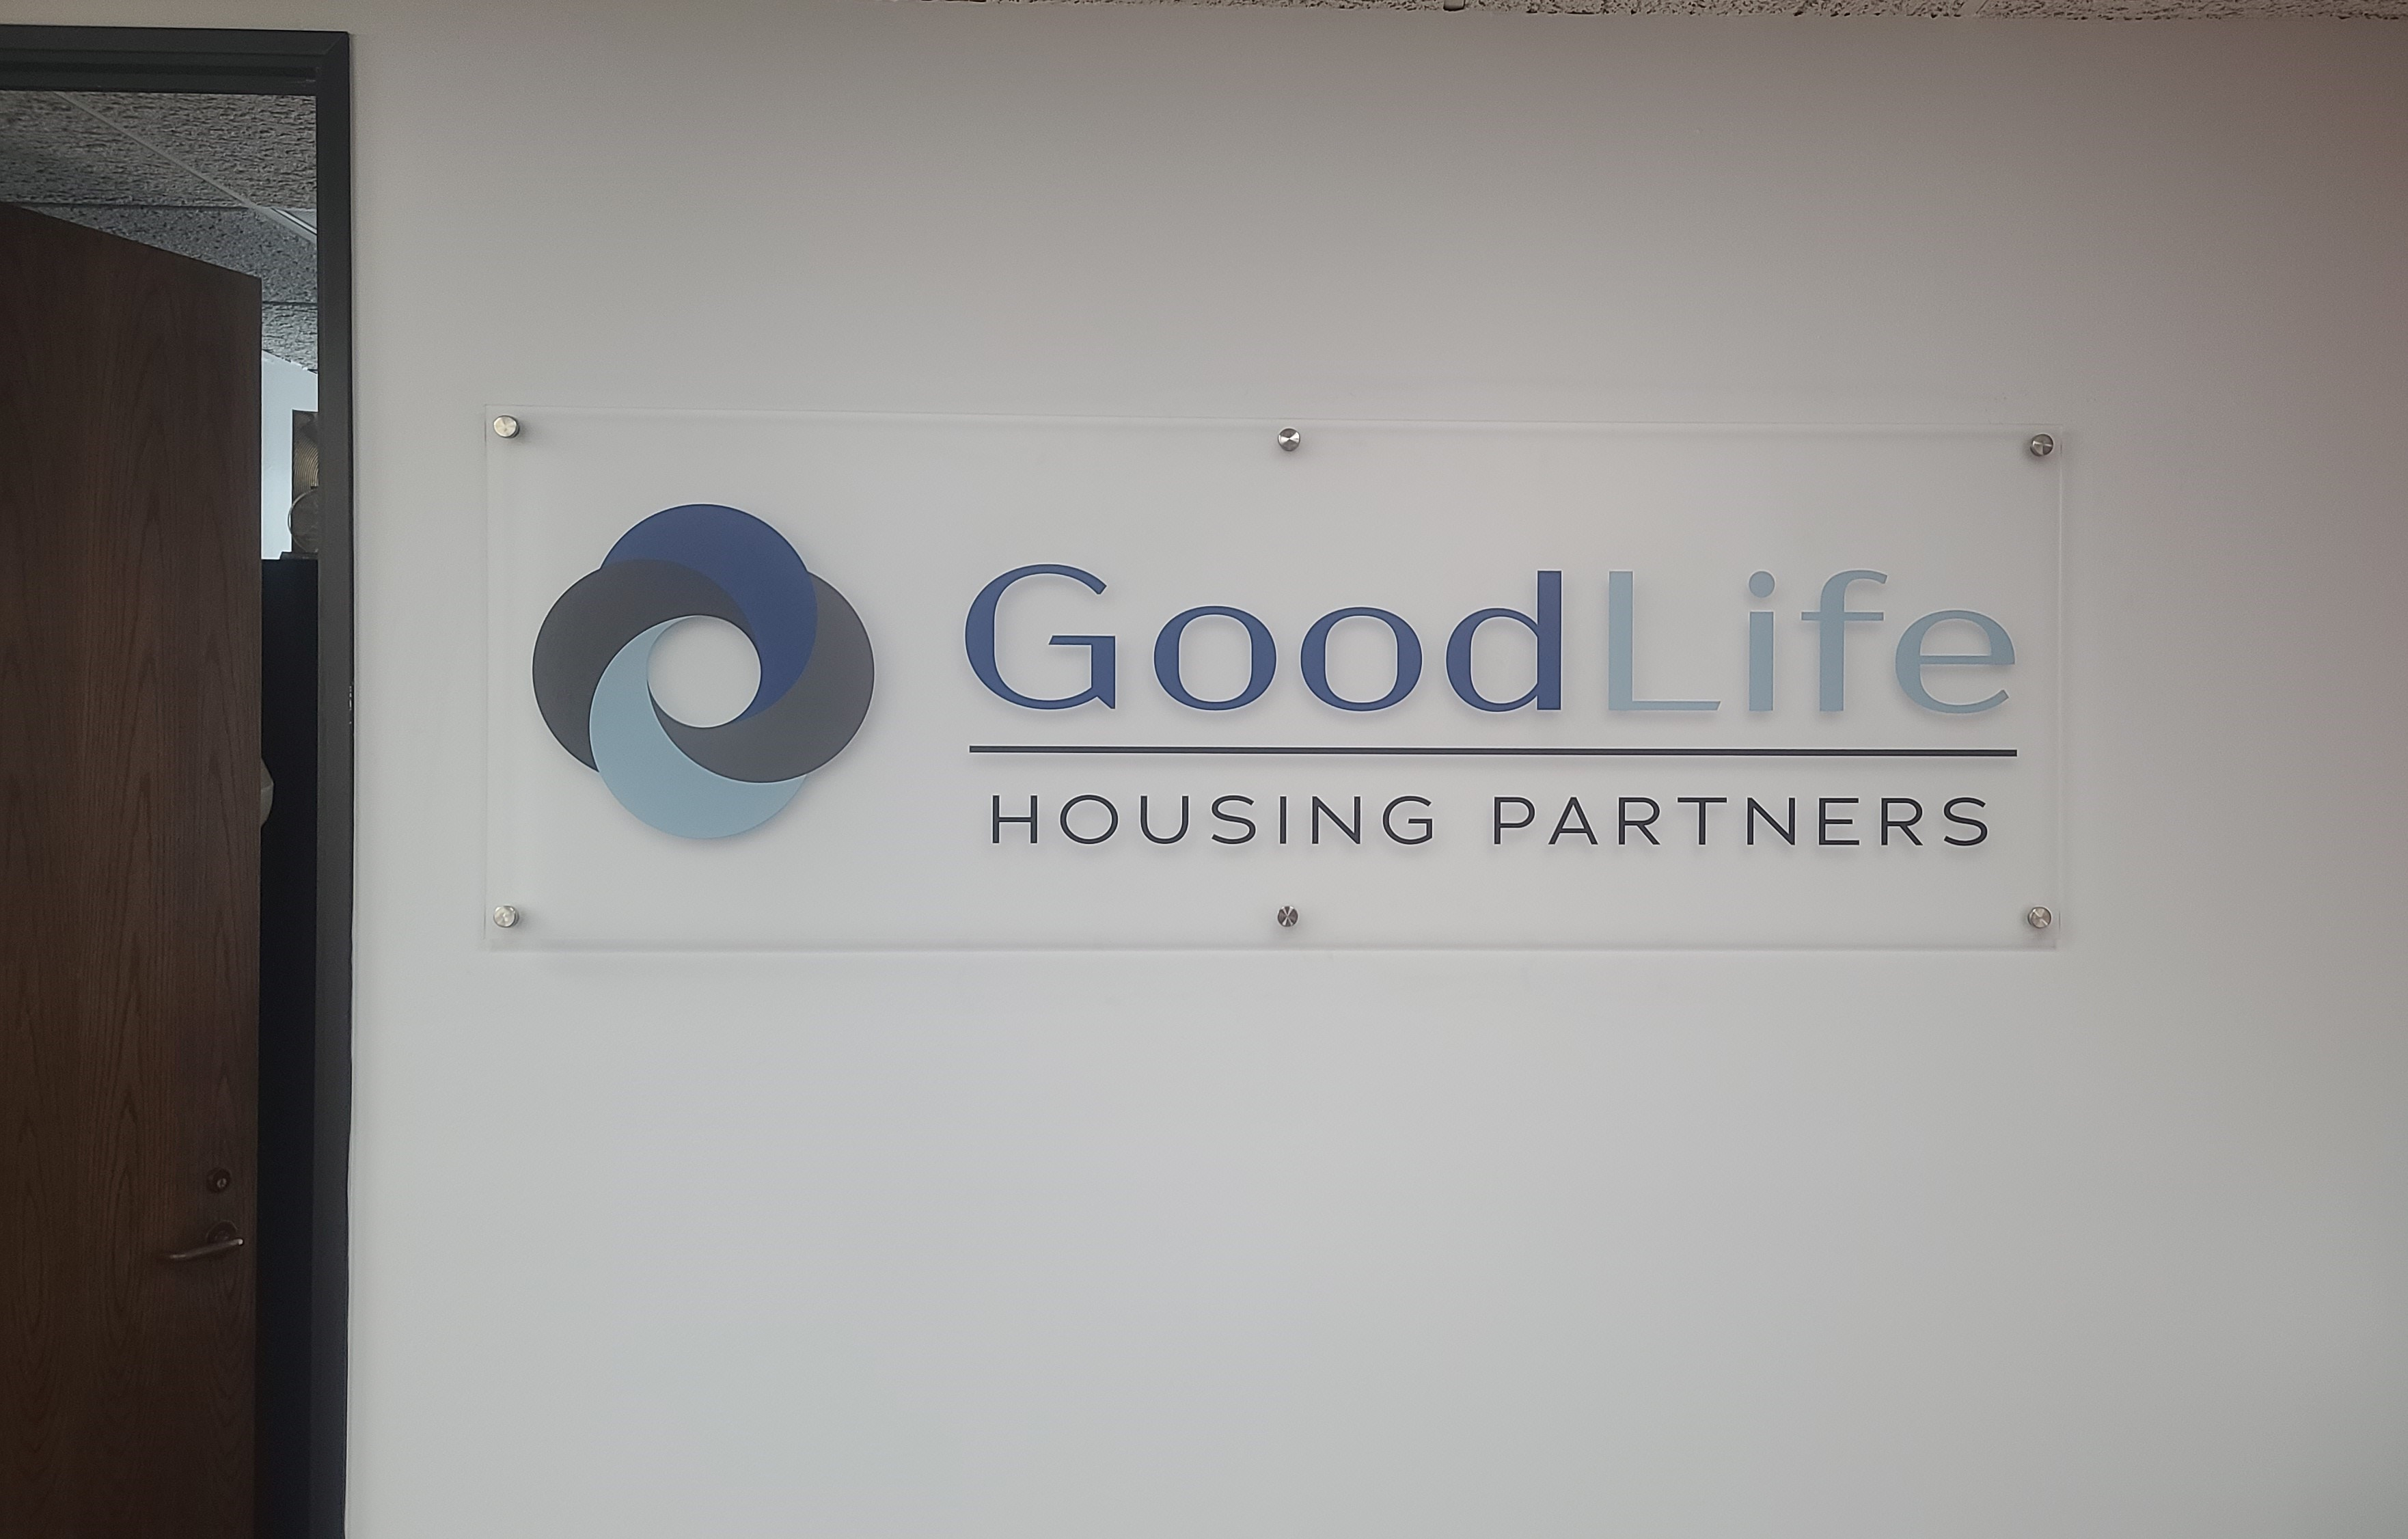 With this acrylic panel lobby sign for their Downtown Los Angeles office, GoodLife Housing will definitely impress those visiting their workplace.